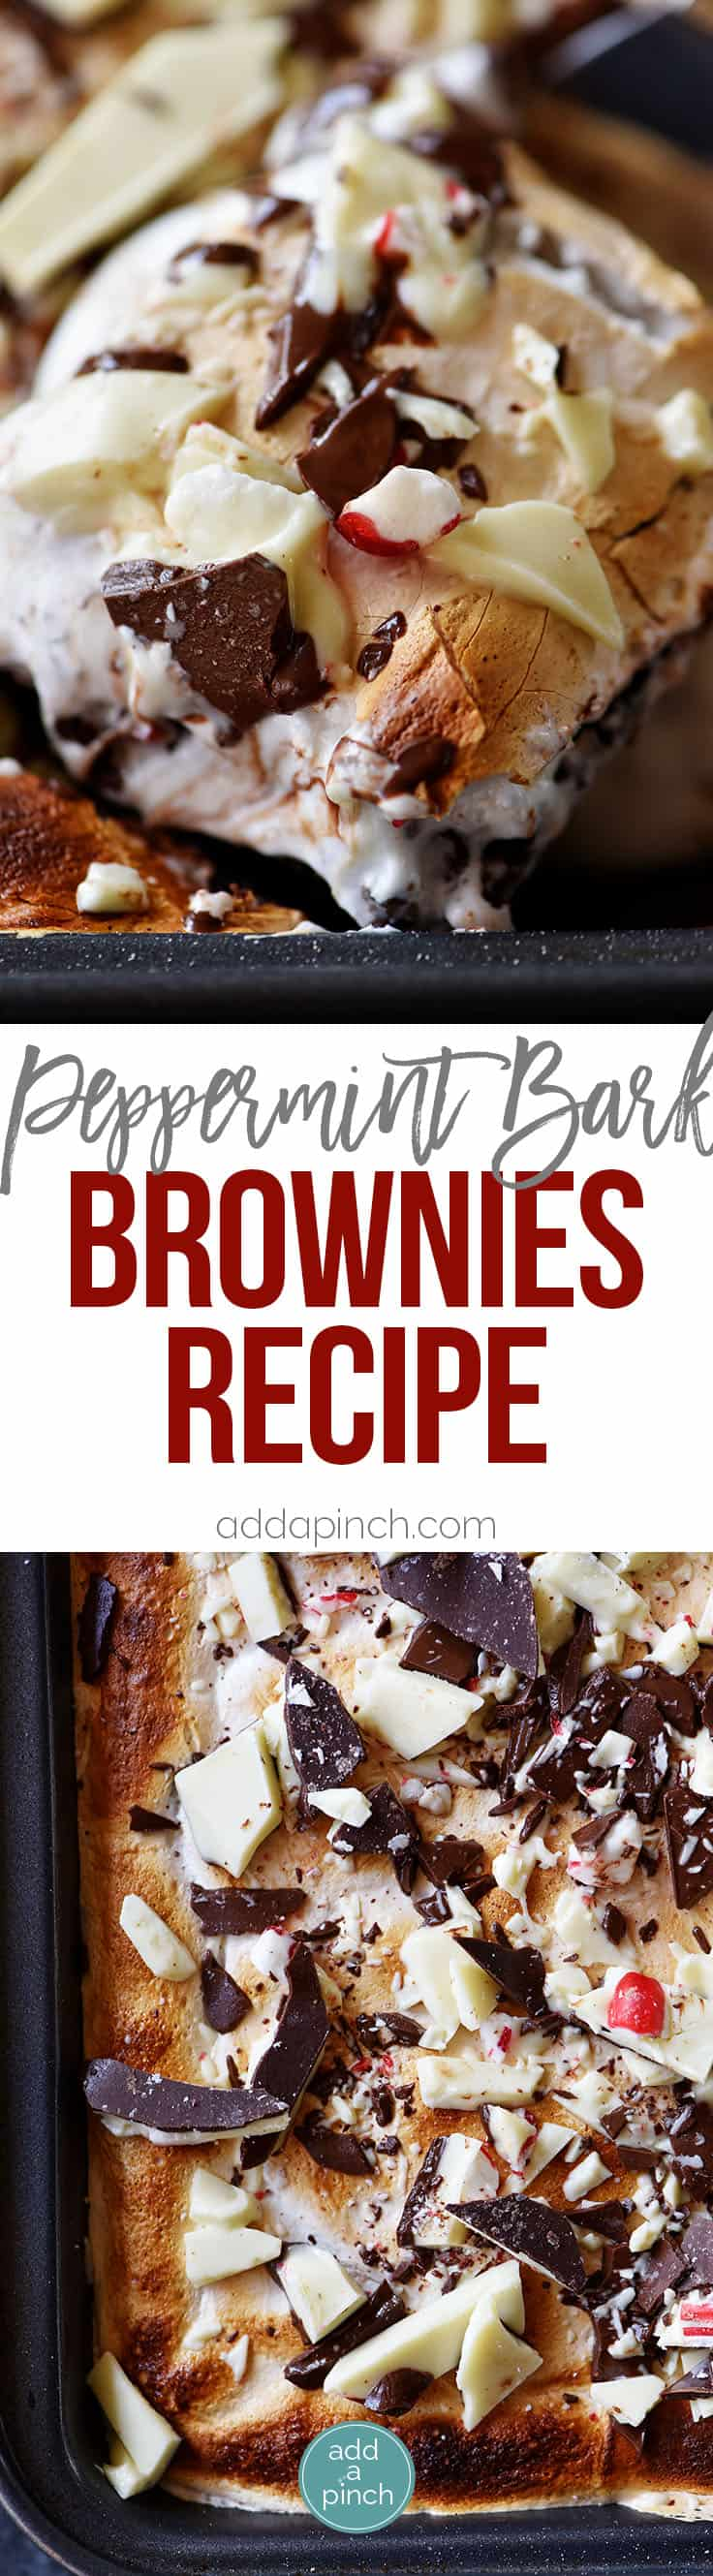 Peppermint Bark Brownies Recipe - Peppermint bark meets your favorite brownies in this quick, easy and delicious recipe! // addapinch.com